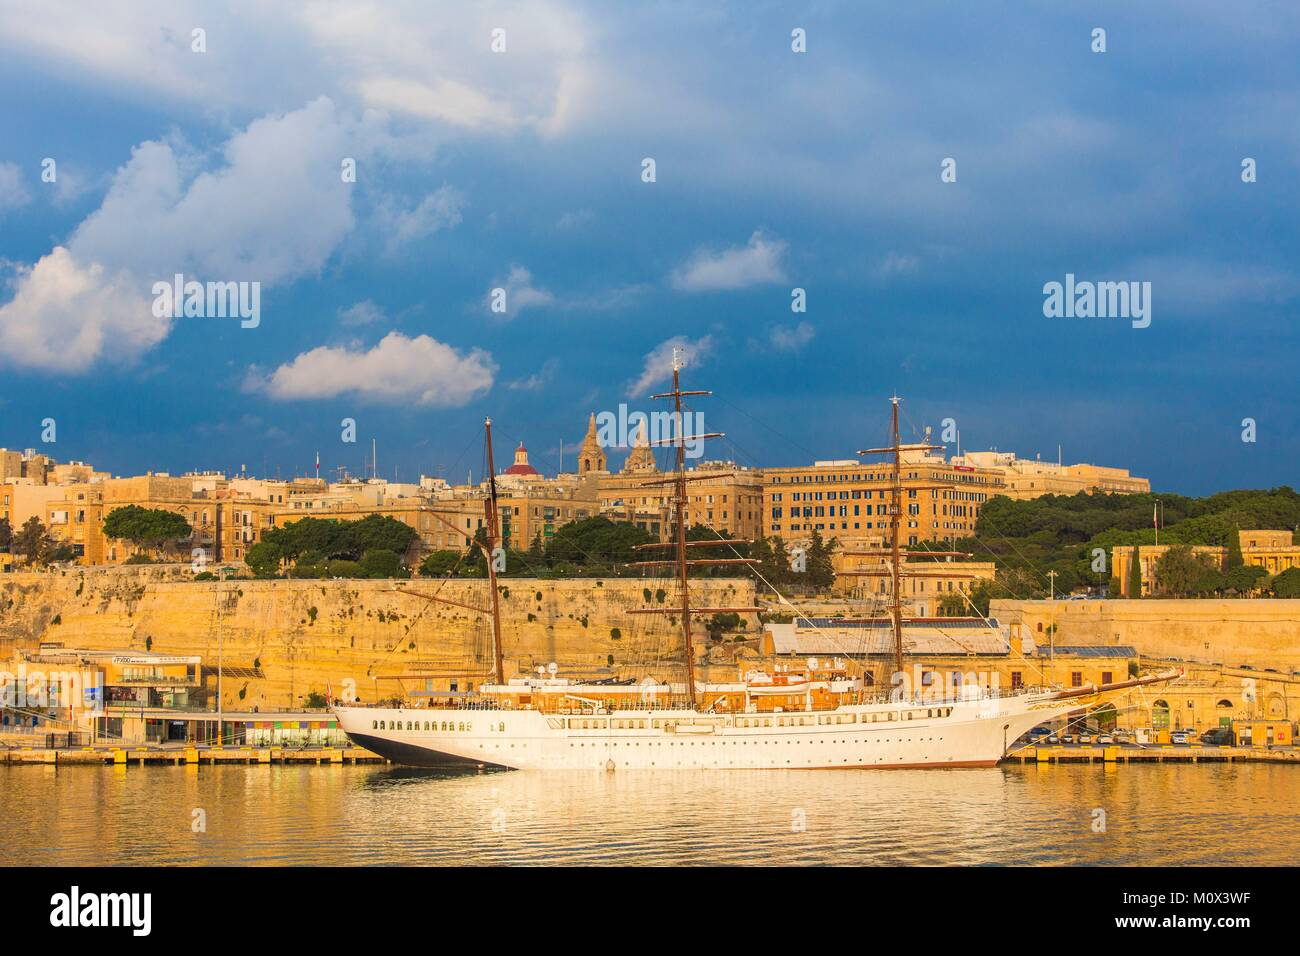 Malta,Valletta,city listed as World Heritage by UNESCO,Grand Harbour,cruising sailboat - Stock Image